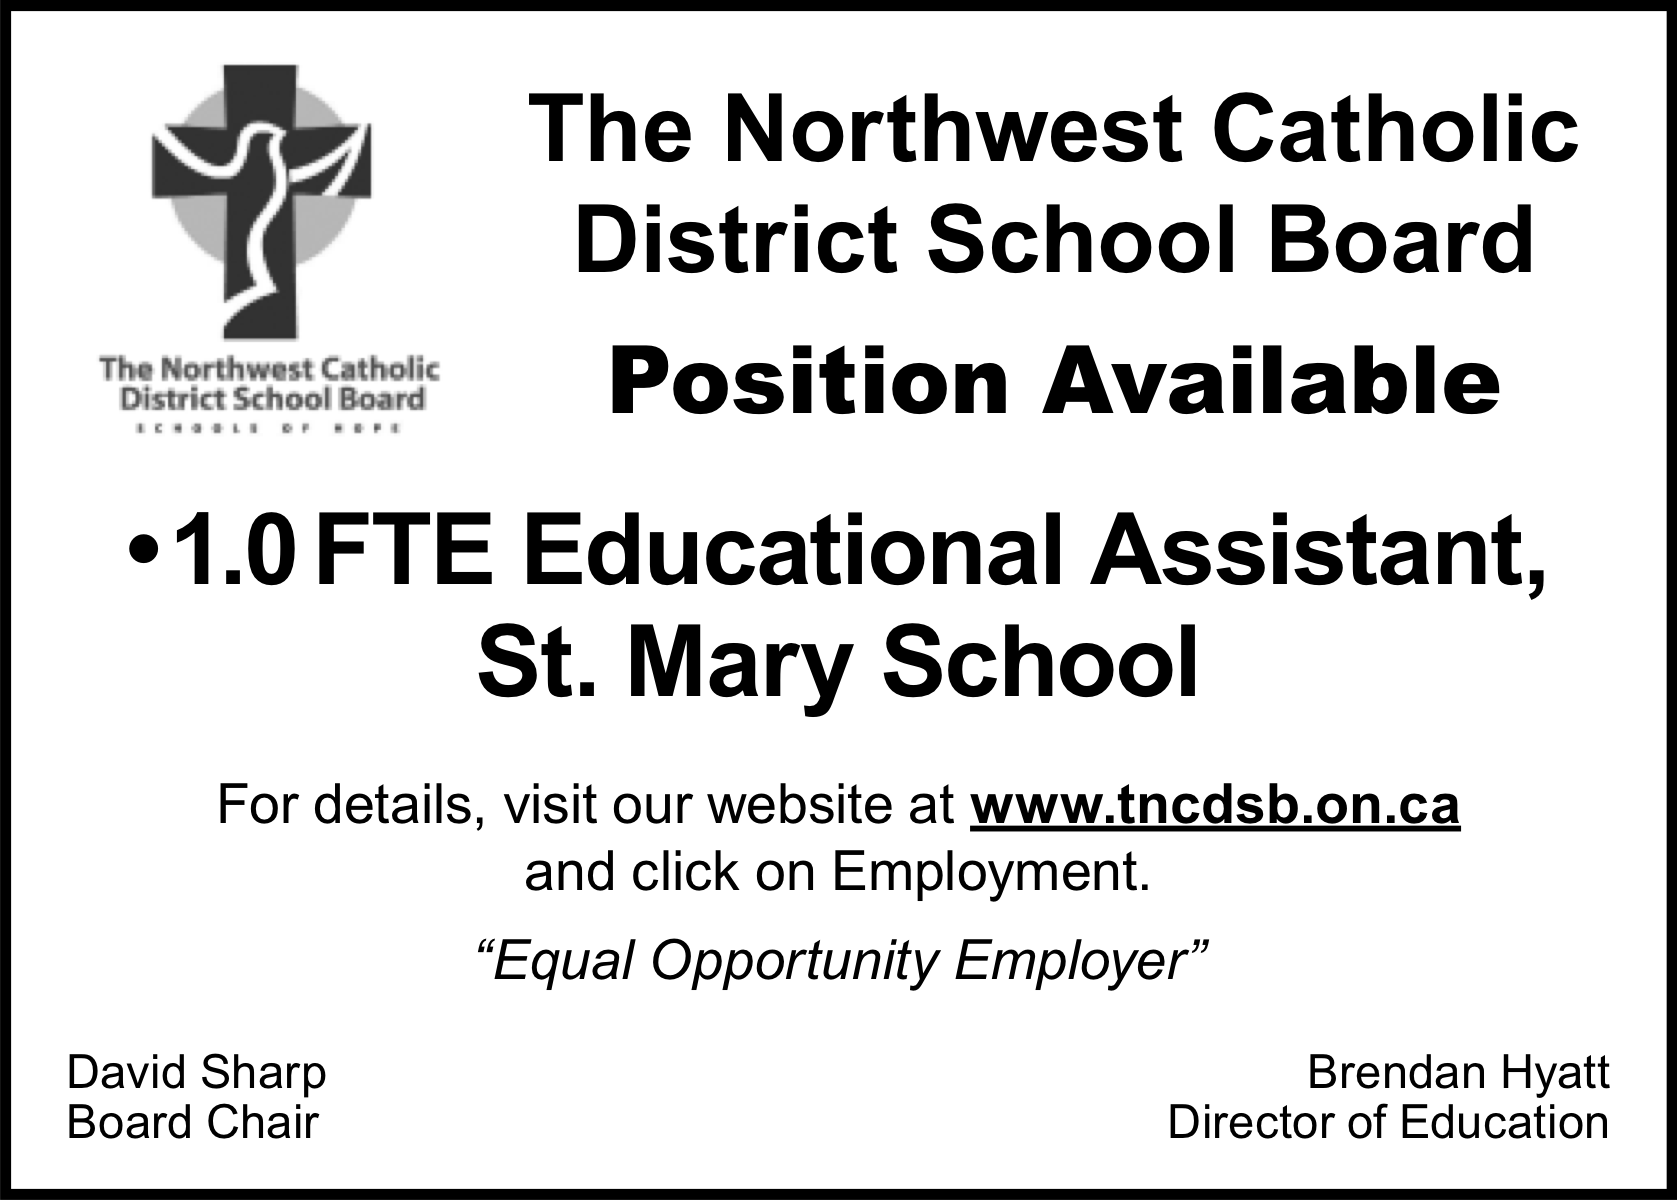 1.0 FTE Educational Assistant, St. Mary School